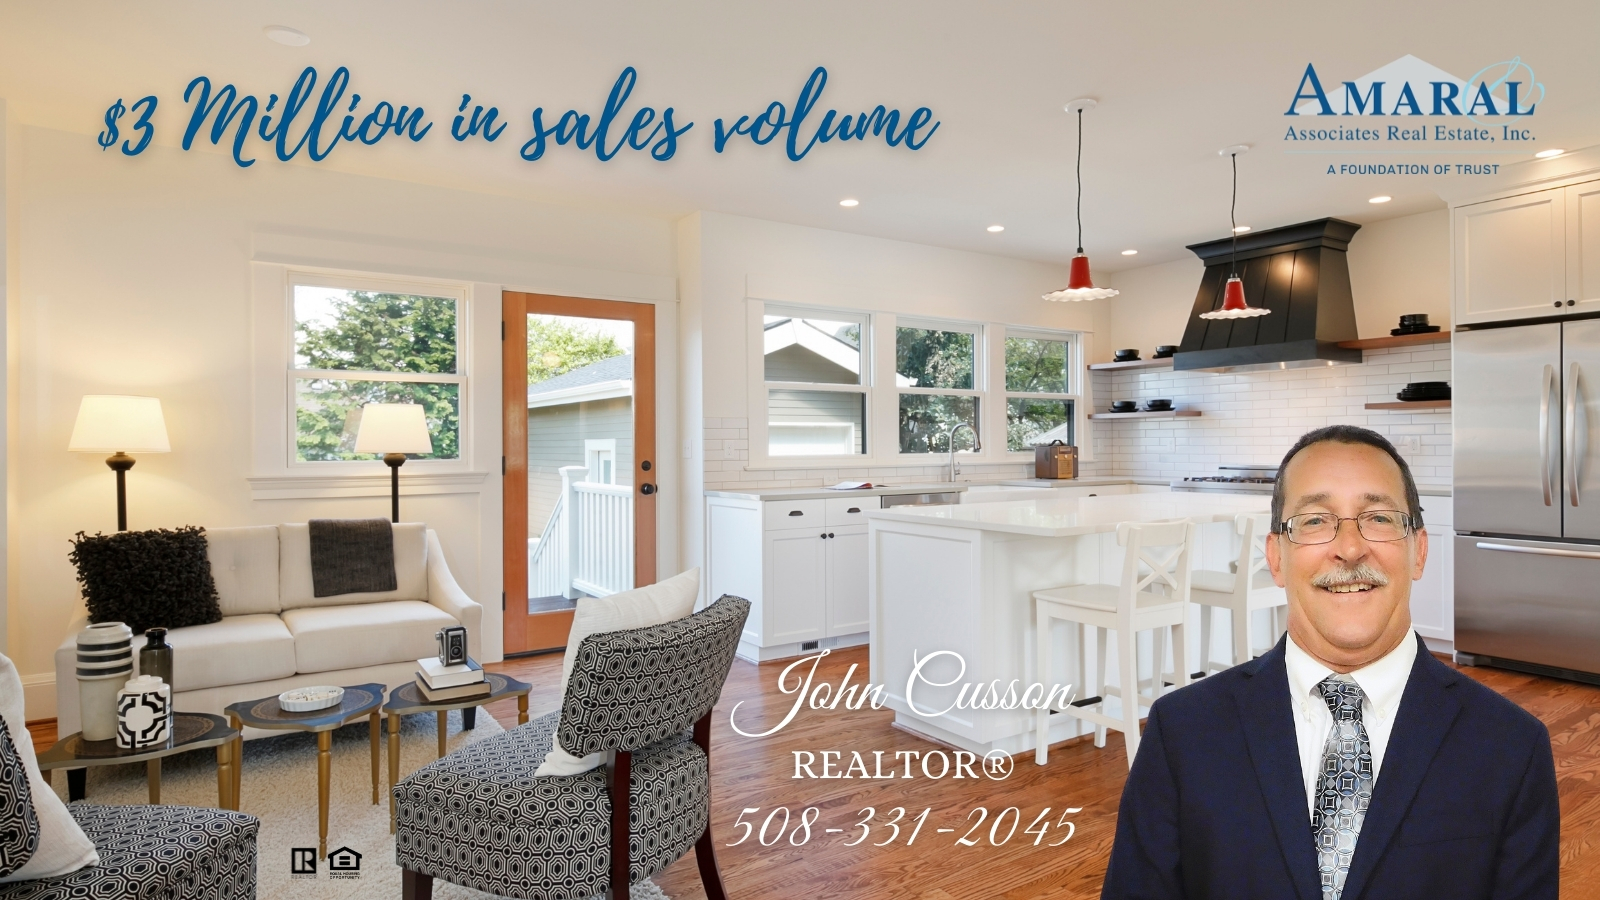 Congratulations to John Cusson for reaching this new milestone in 2021!